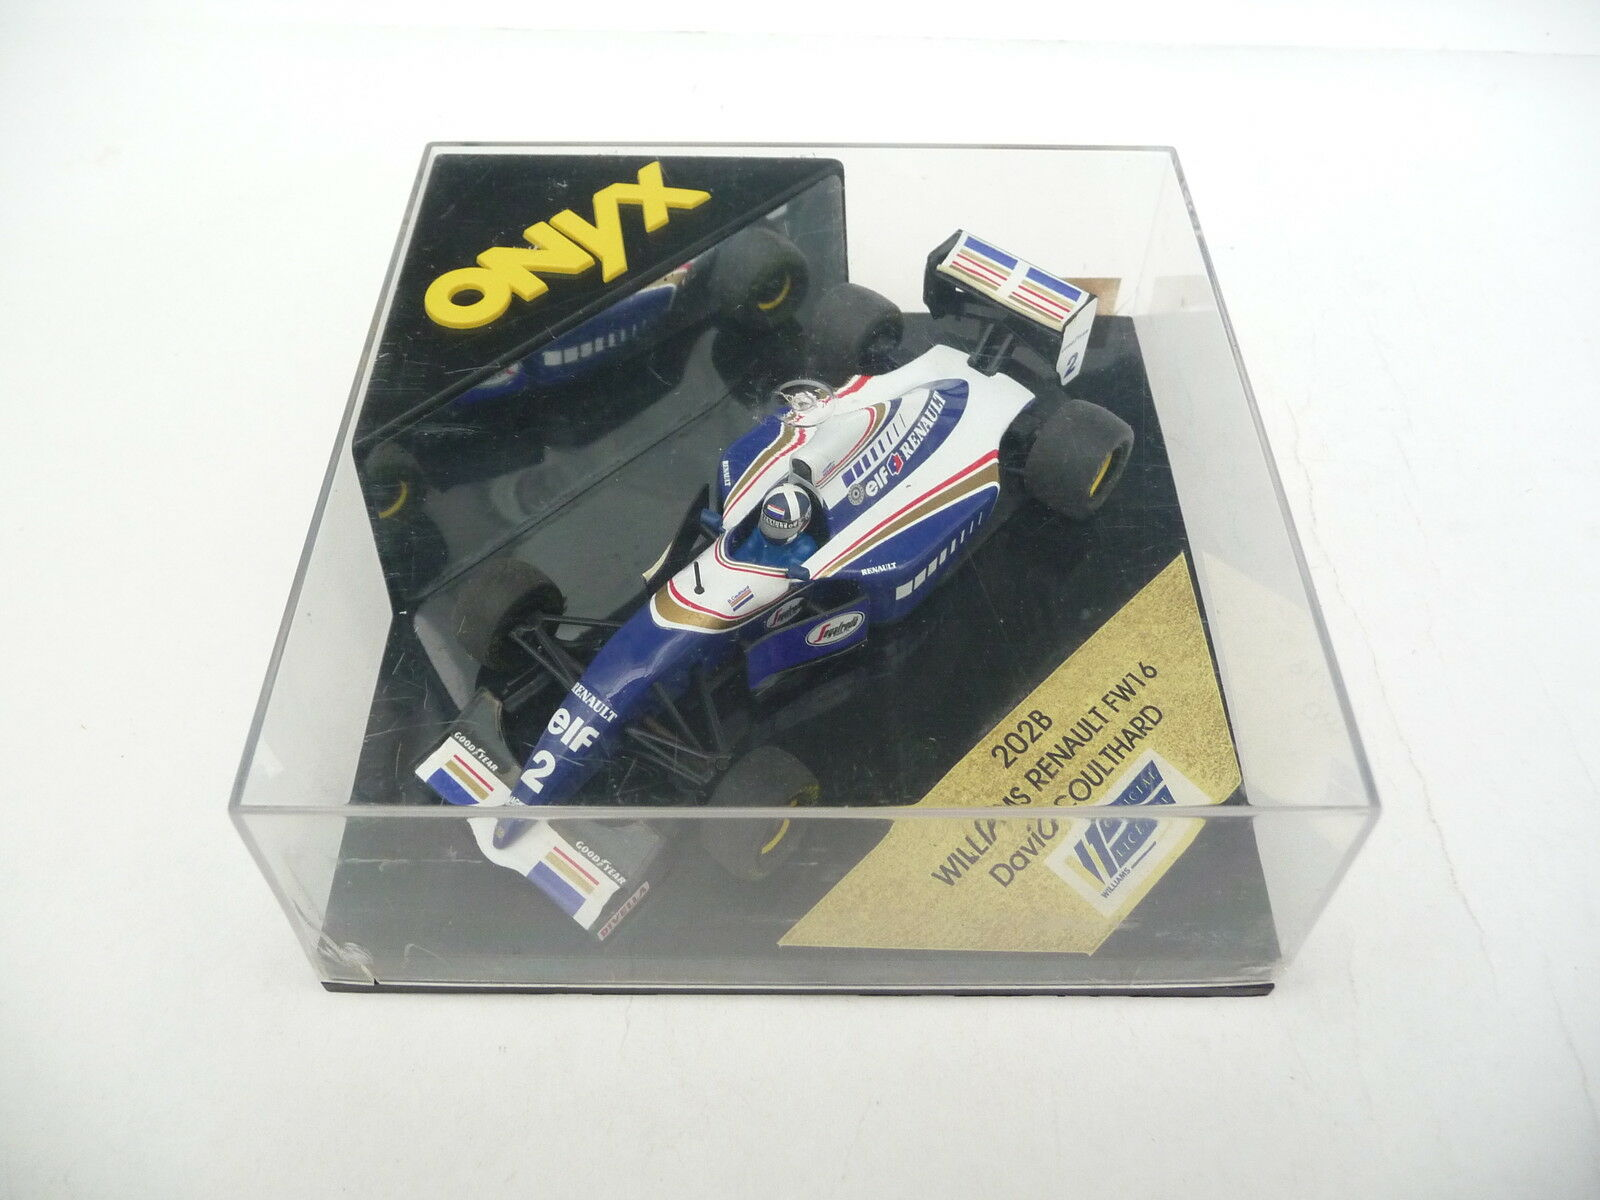 Onyx 1 43 Williams Renault FW16 Coulthard 202B